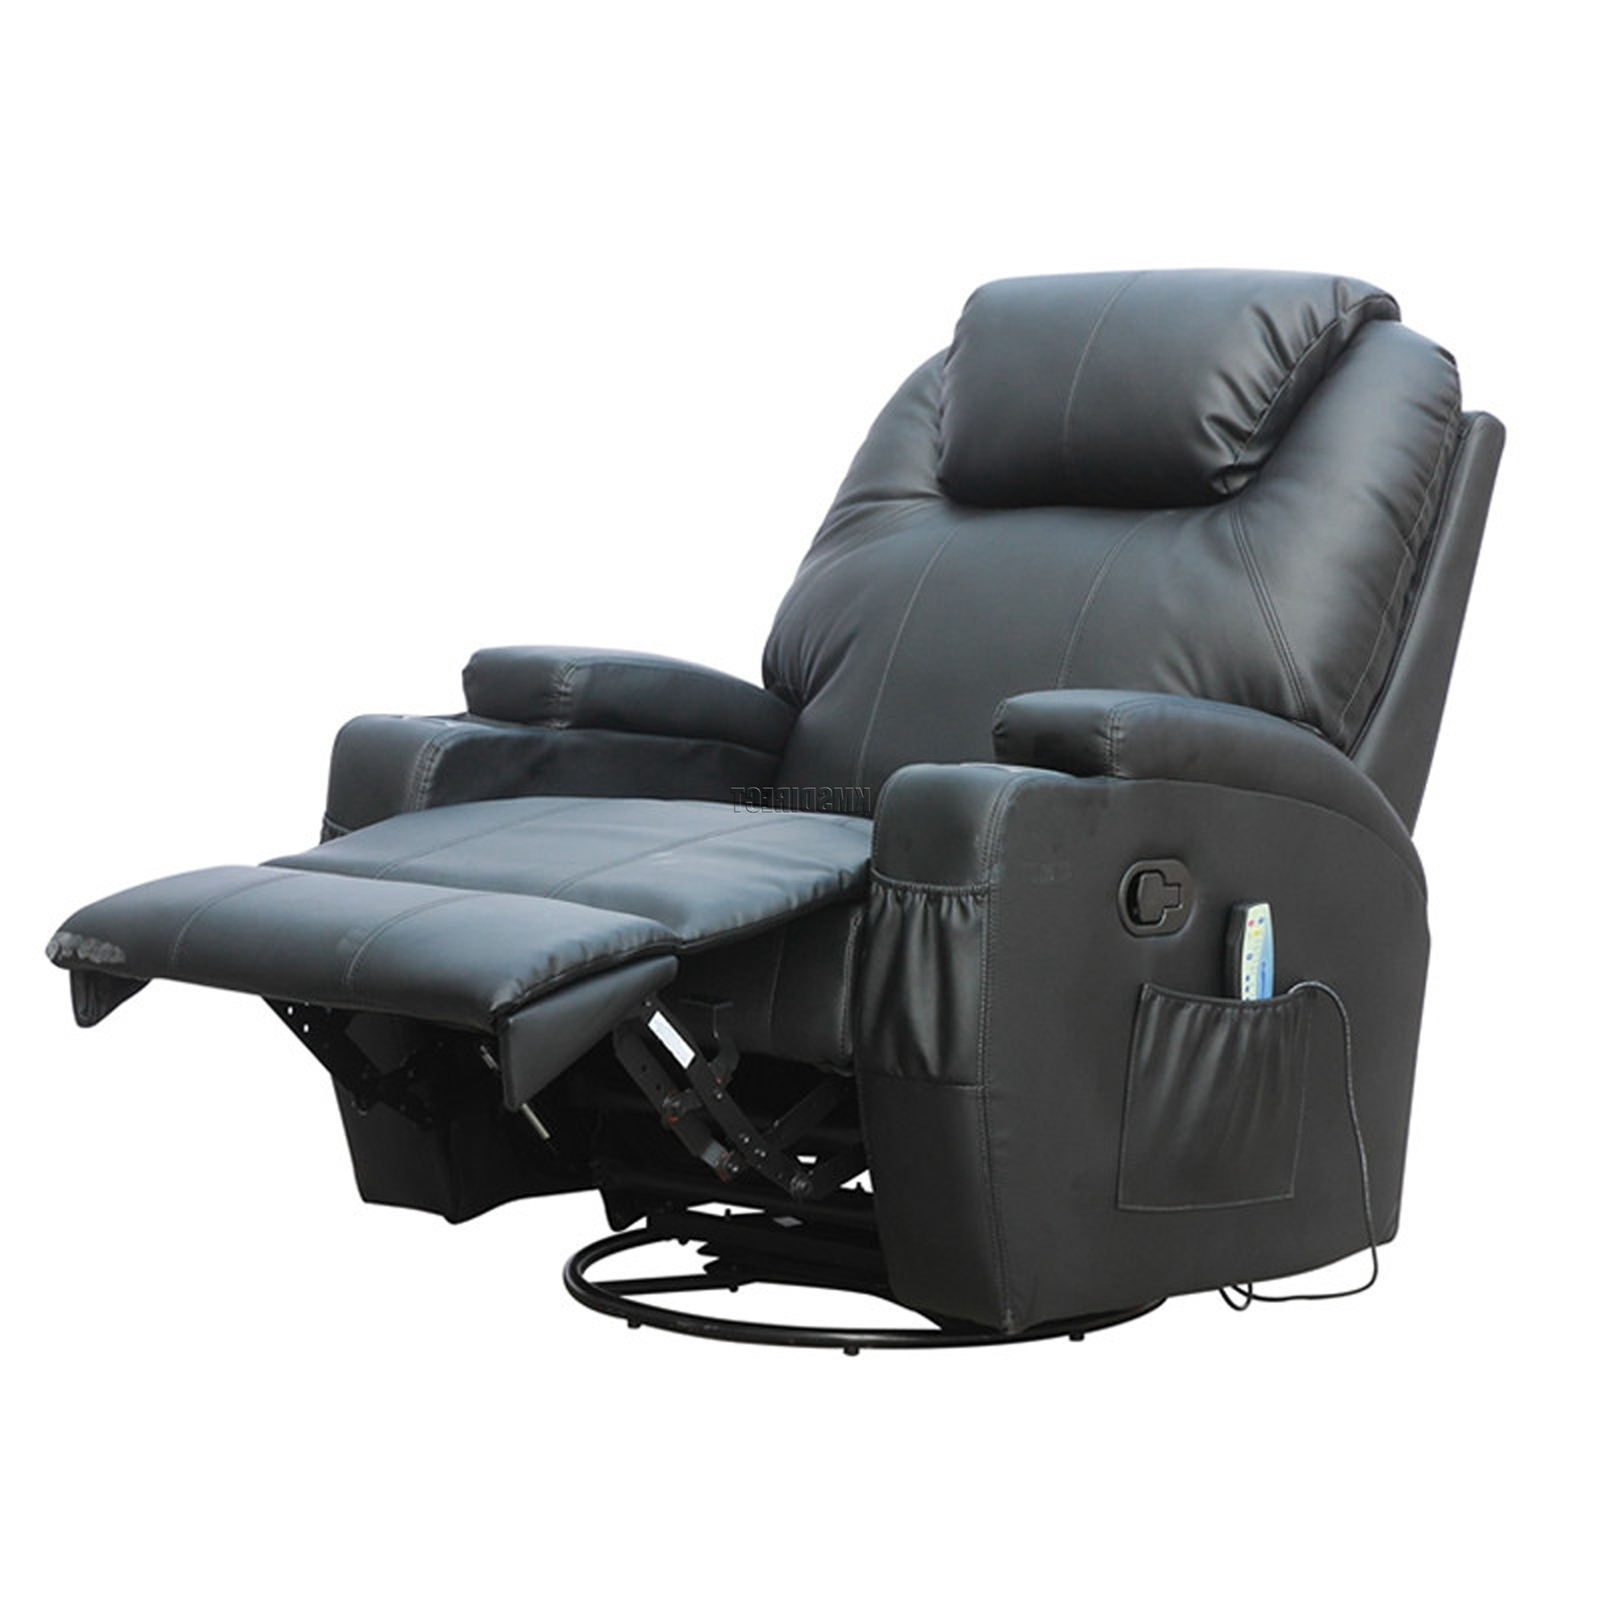 Rocking Sofa Chairs With Regard To Newest Foxhunter Bonded Leather Sofa Massage Recliner Chair Swivel (View 18 of 20)